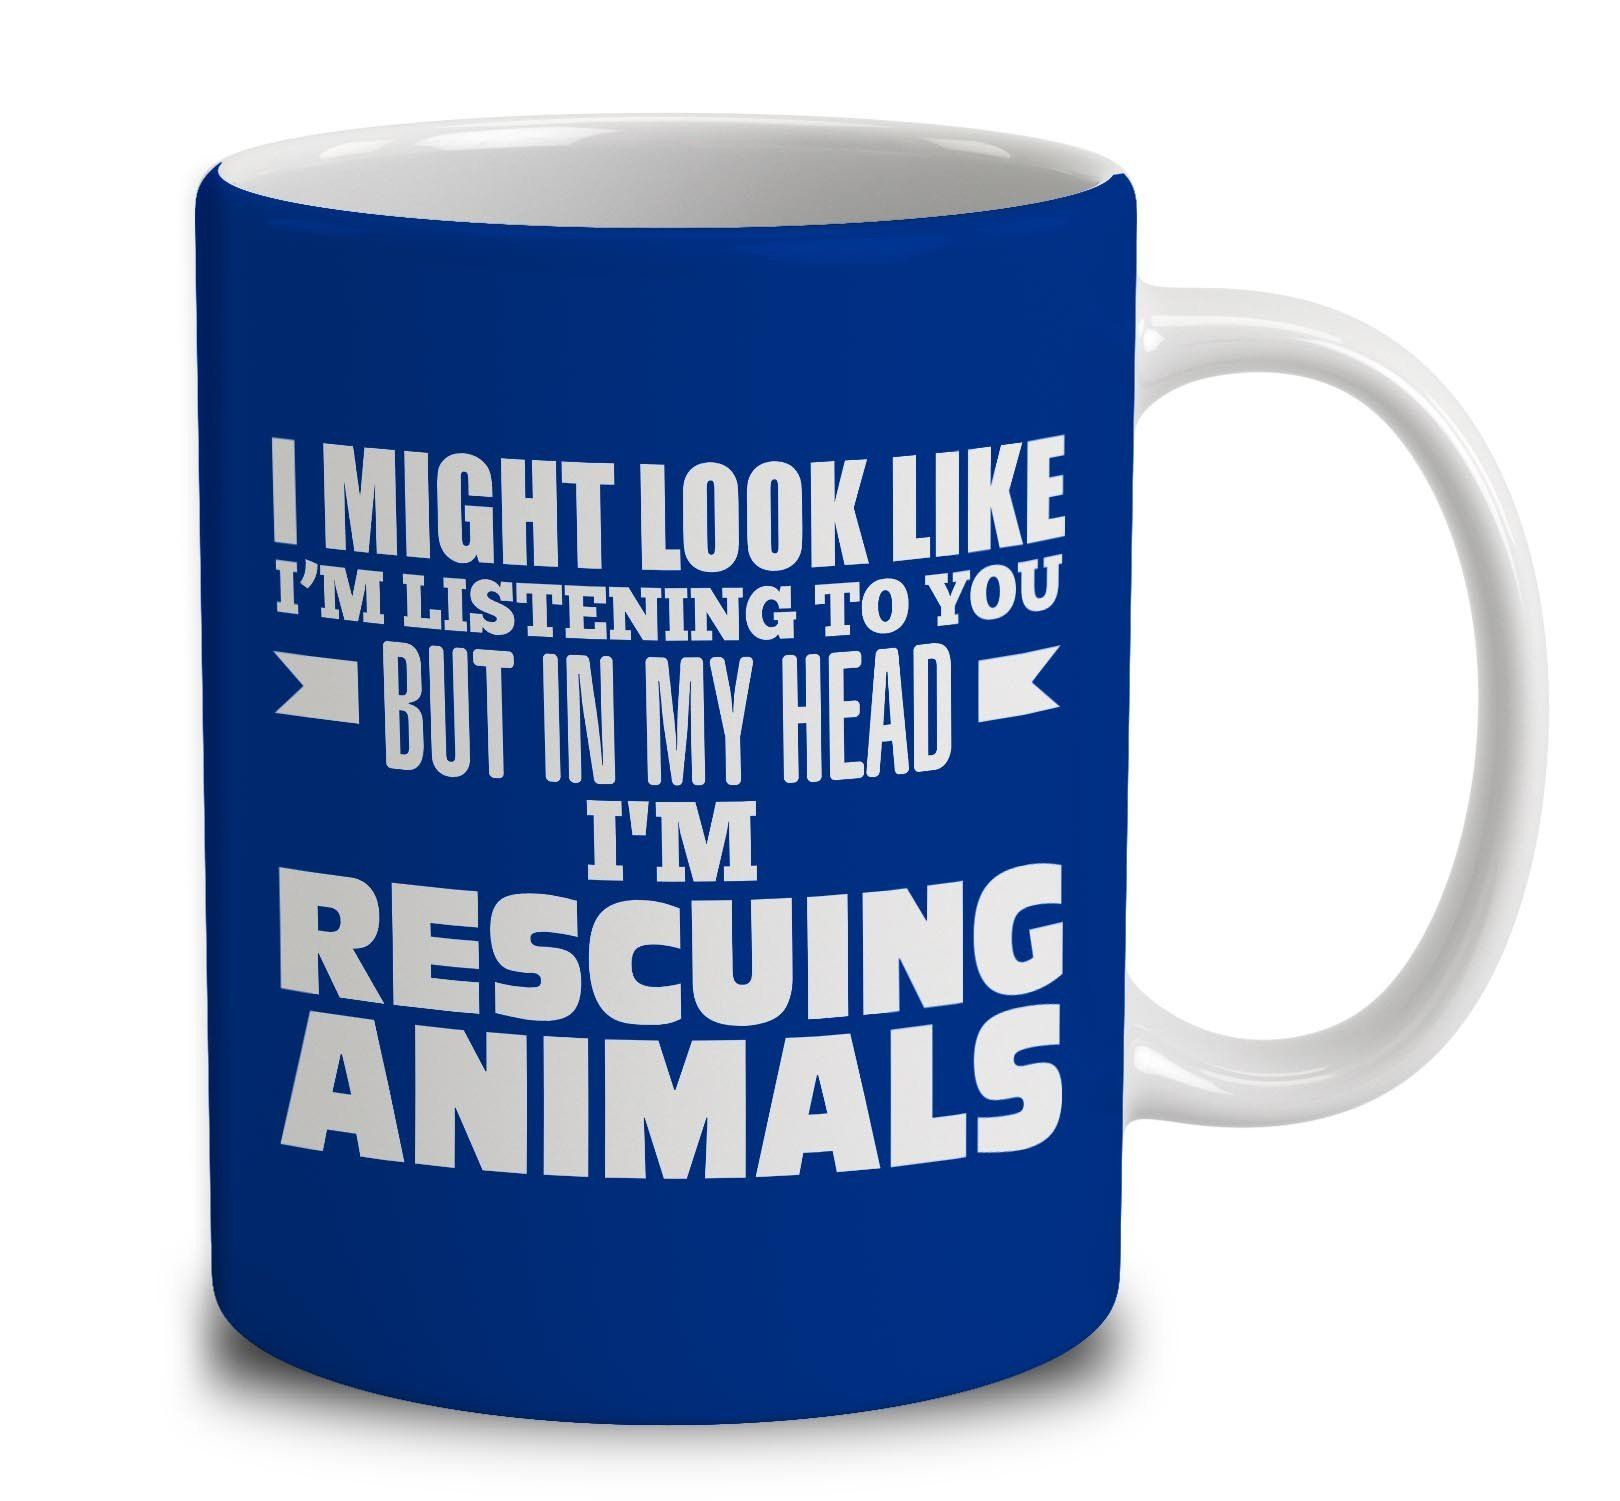 In My Head I'm Rescuing Animals Walking, Dog coffee, How